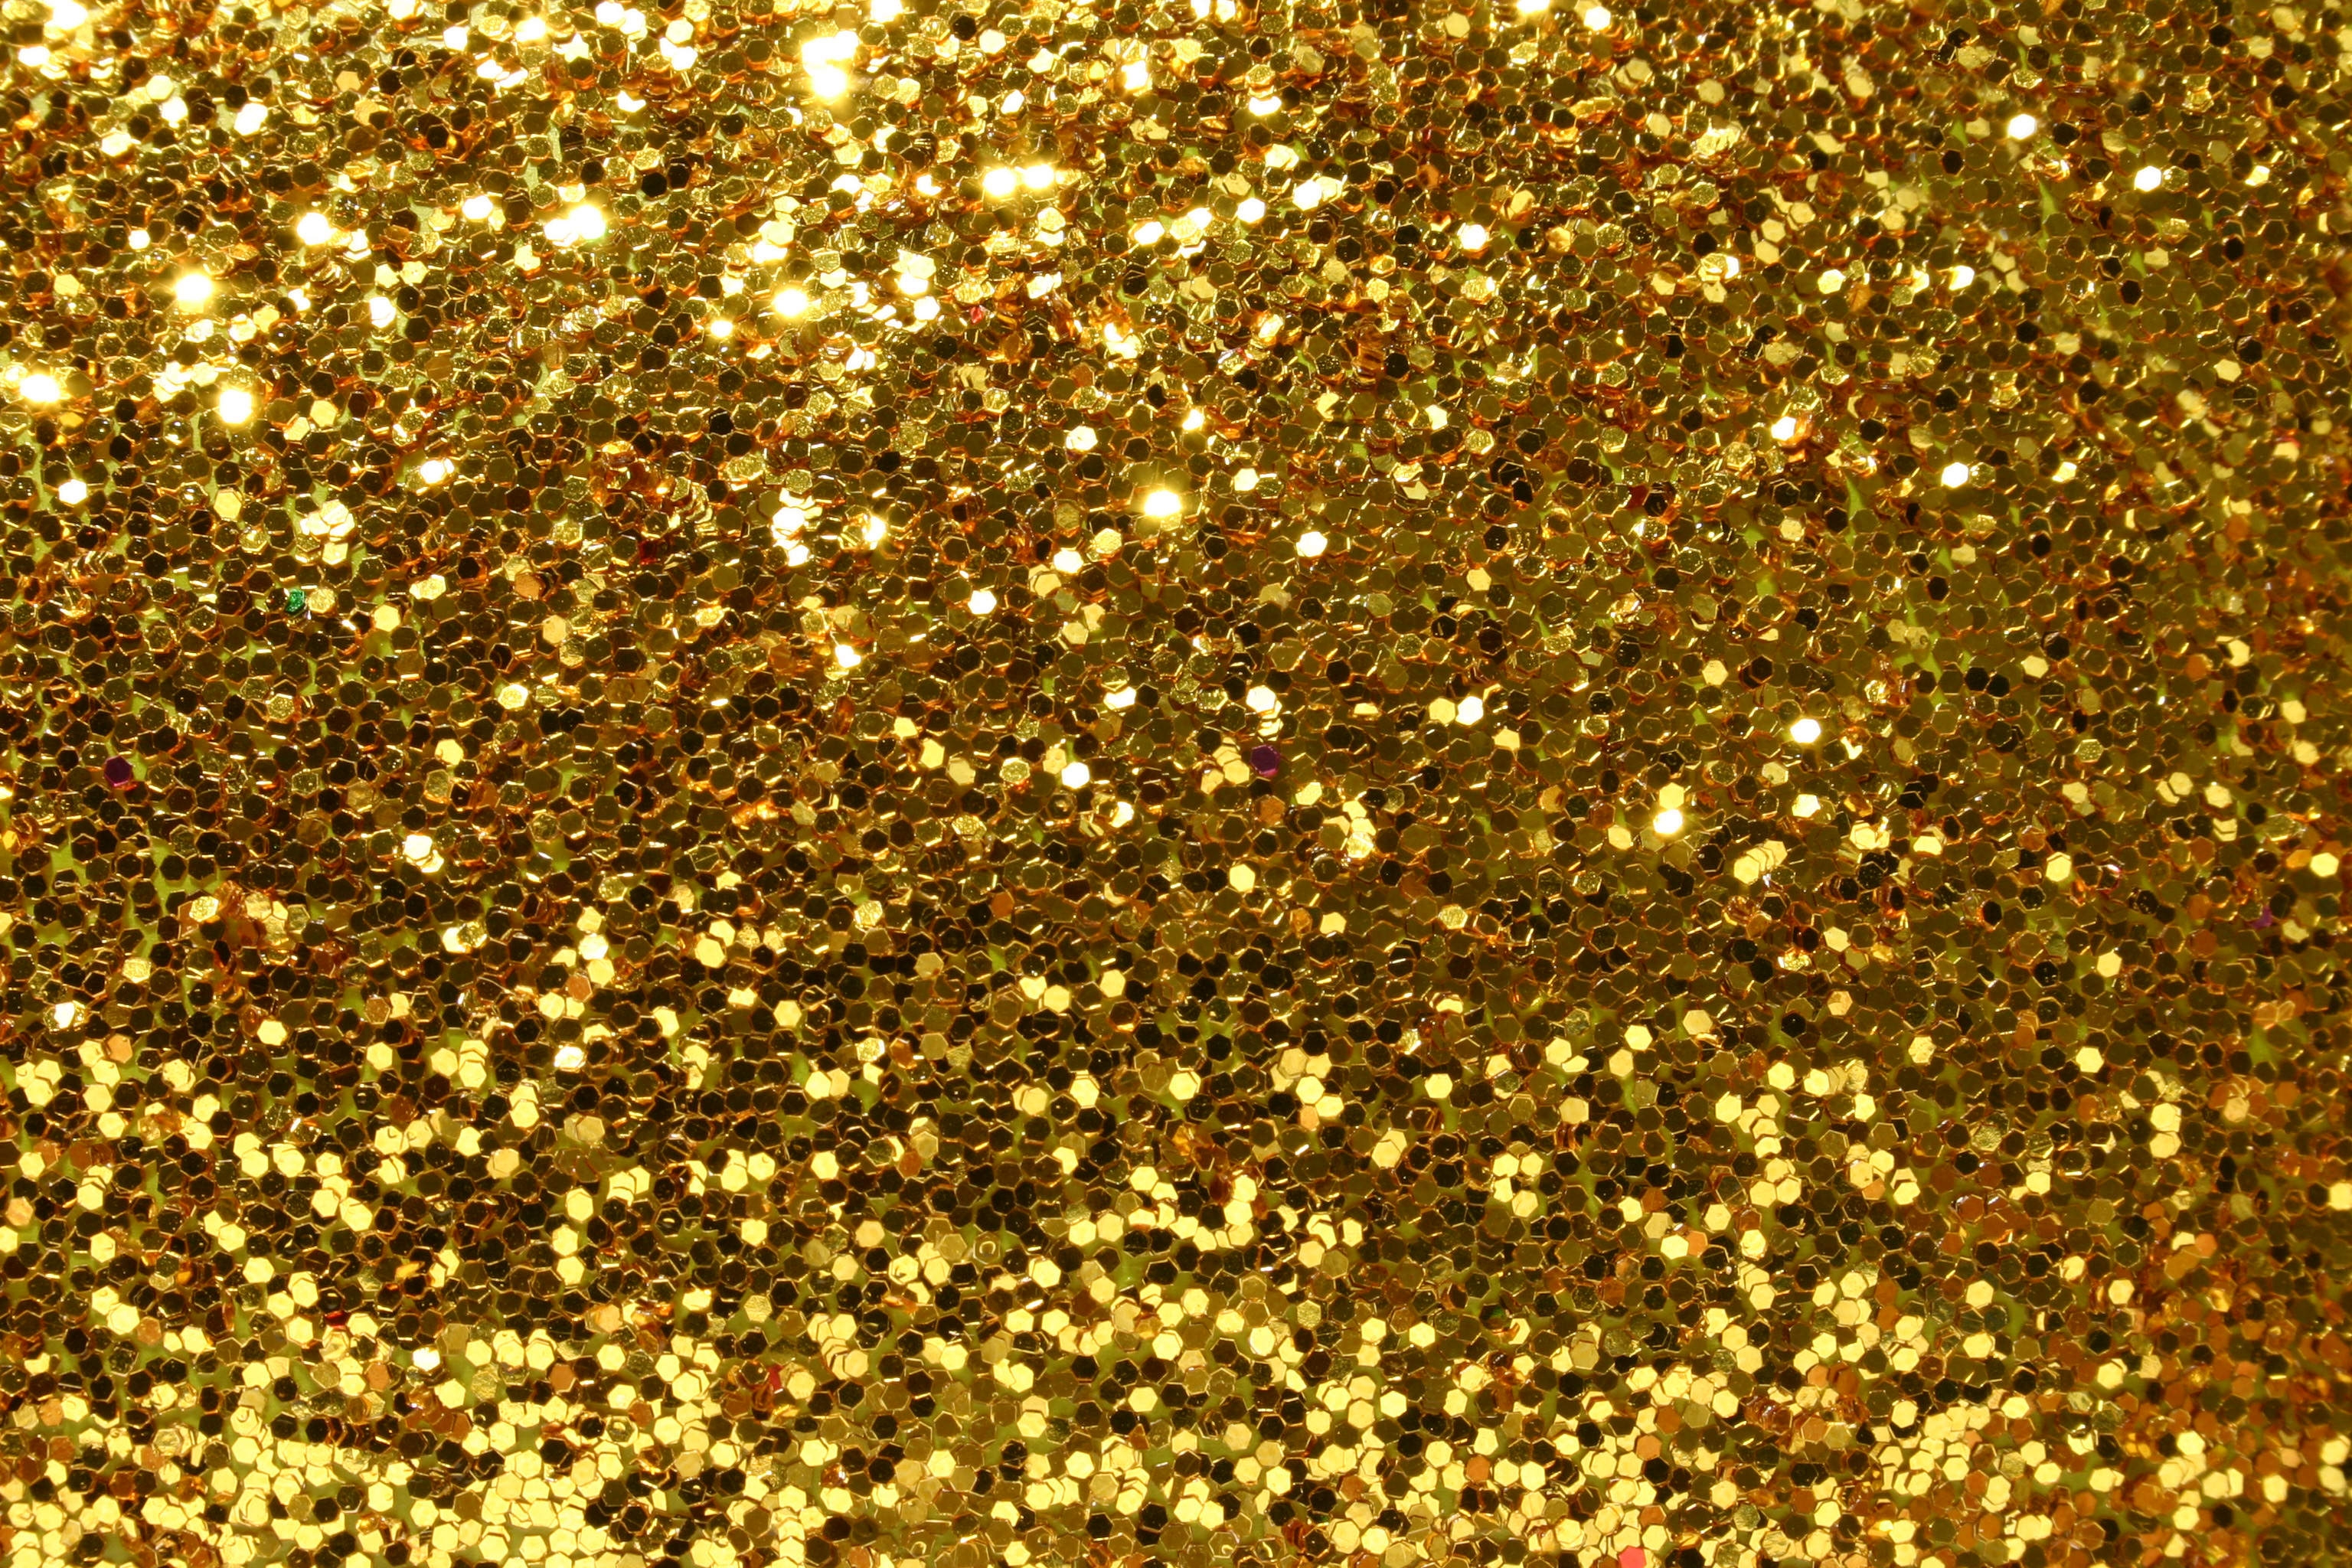 gold background photoshop - photo #21